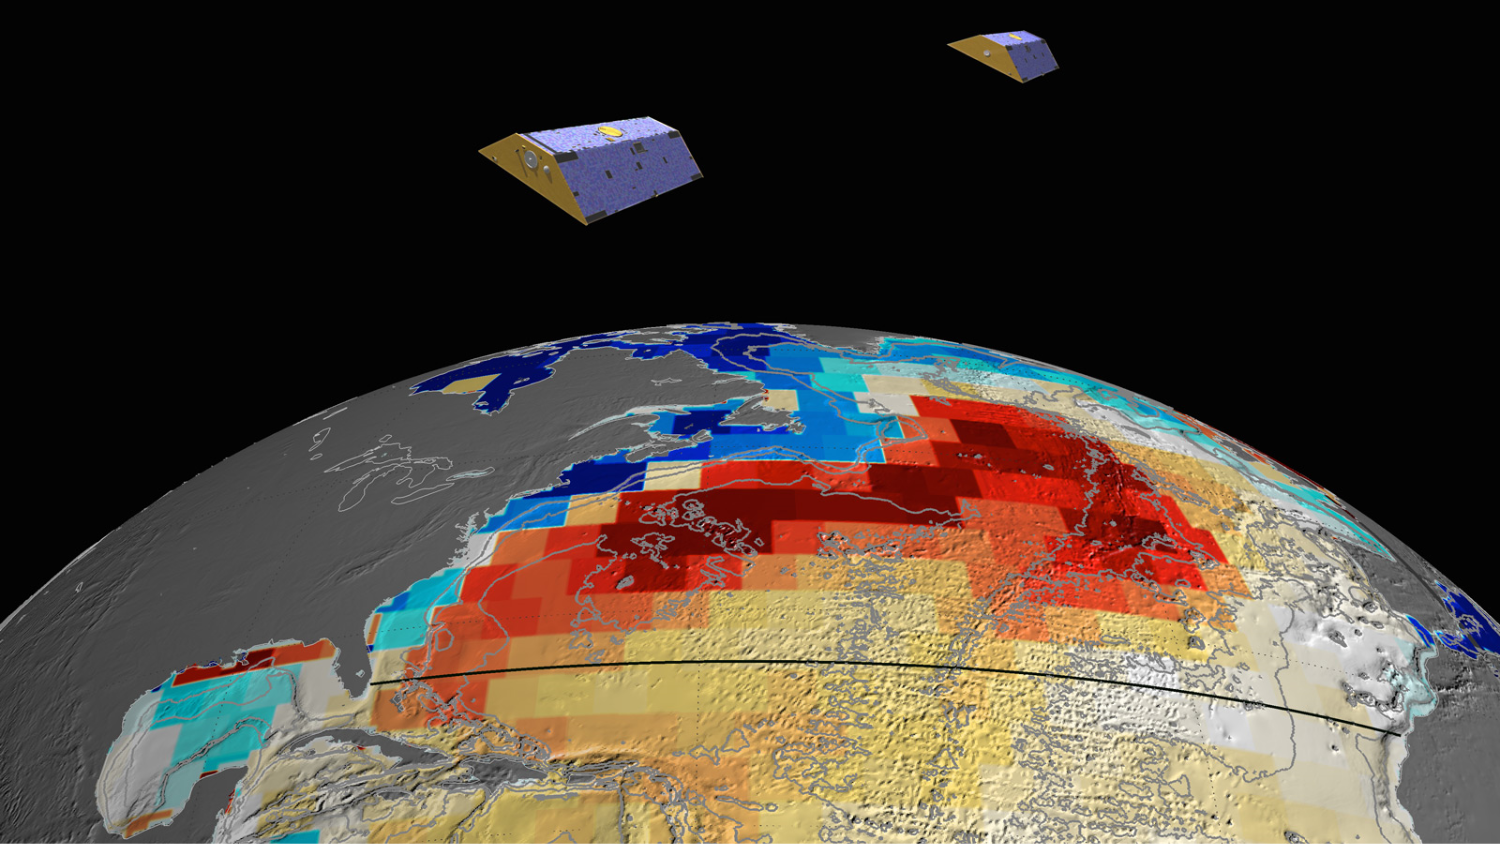 GRACE-FO will measure Atlantic Ocean bottom pressure as an indicator of deep ocean current speed, as GRACE did. This pattern of above-average (blue) and below-average (red) seafloor pressure in 2009 GRACE data revealed a temporary slowing of deep ocean currents.